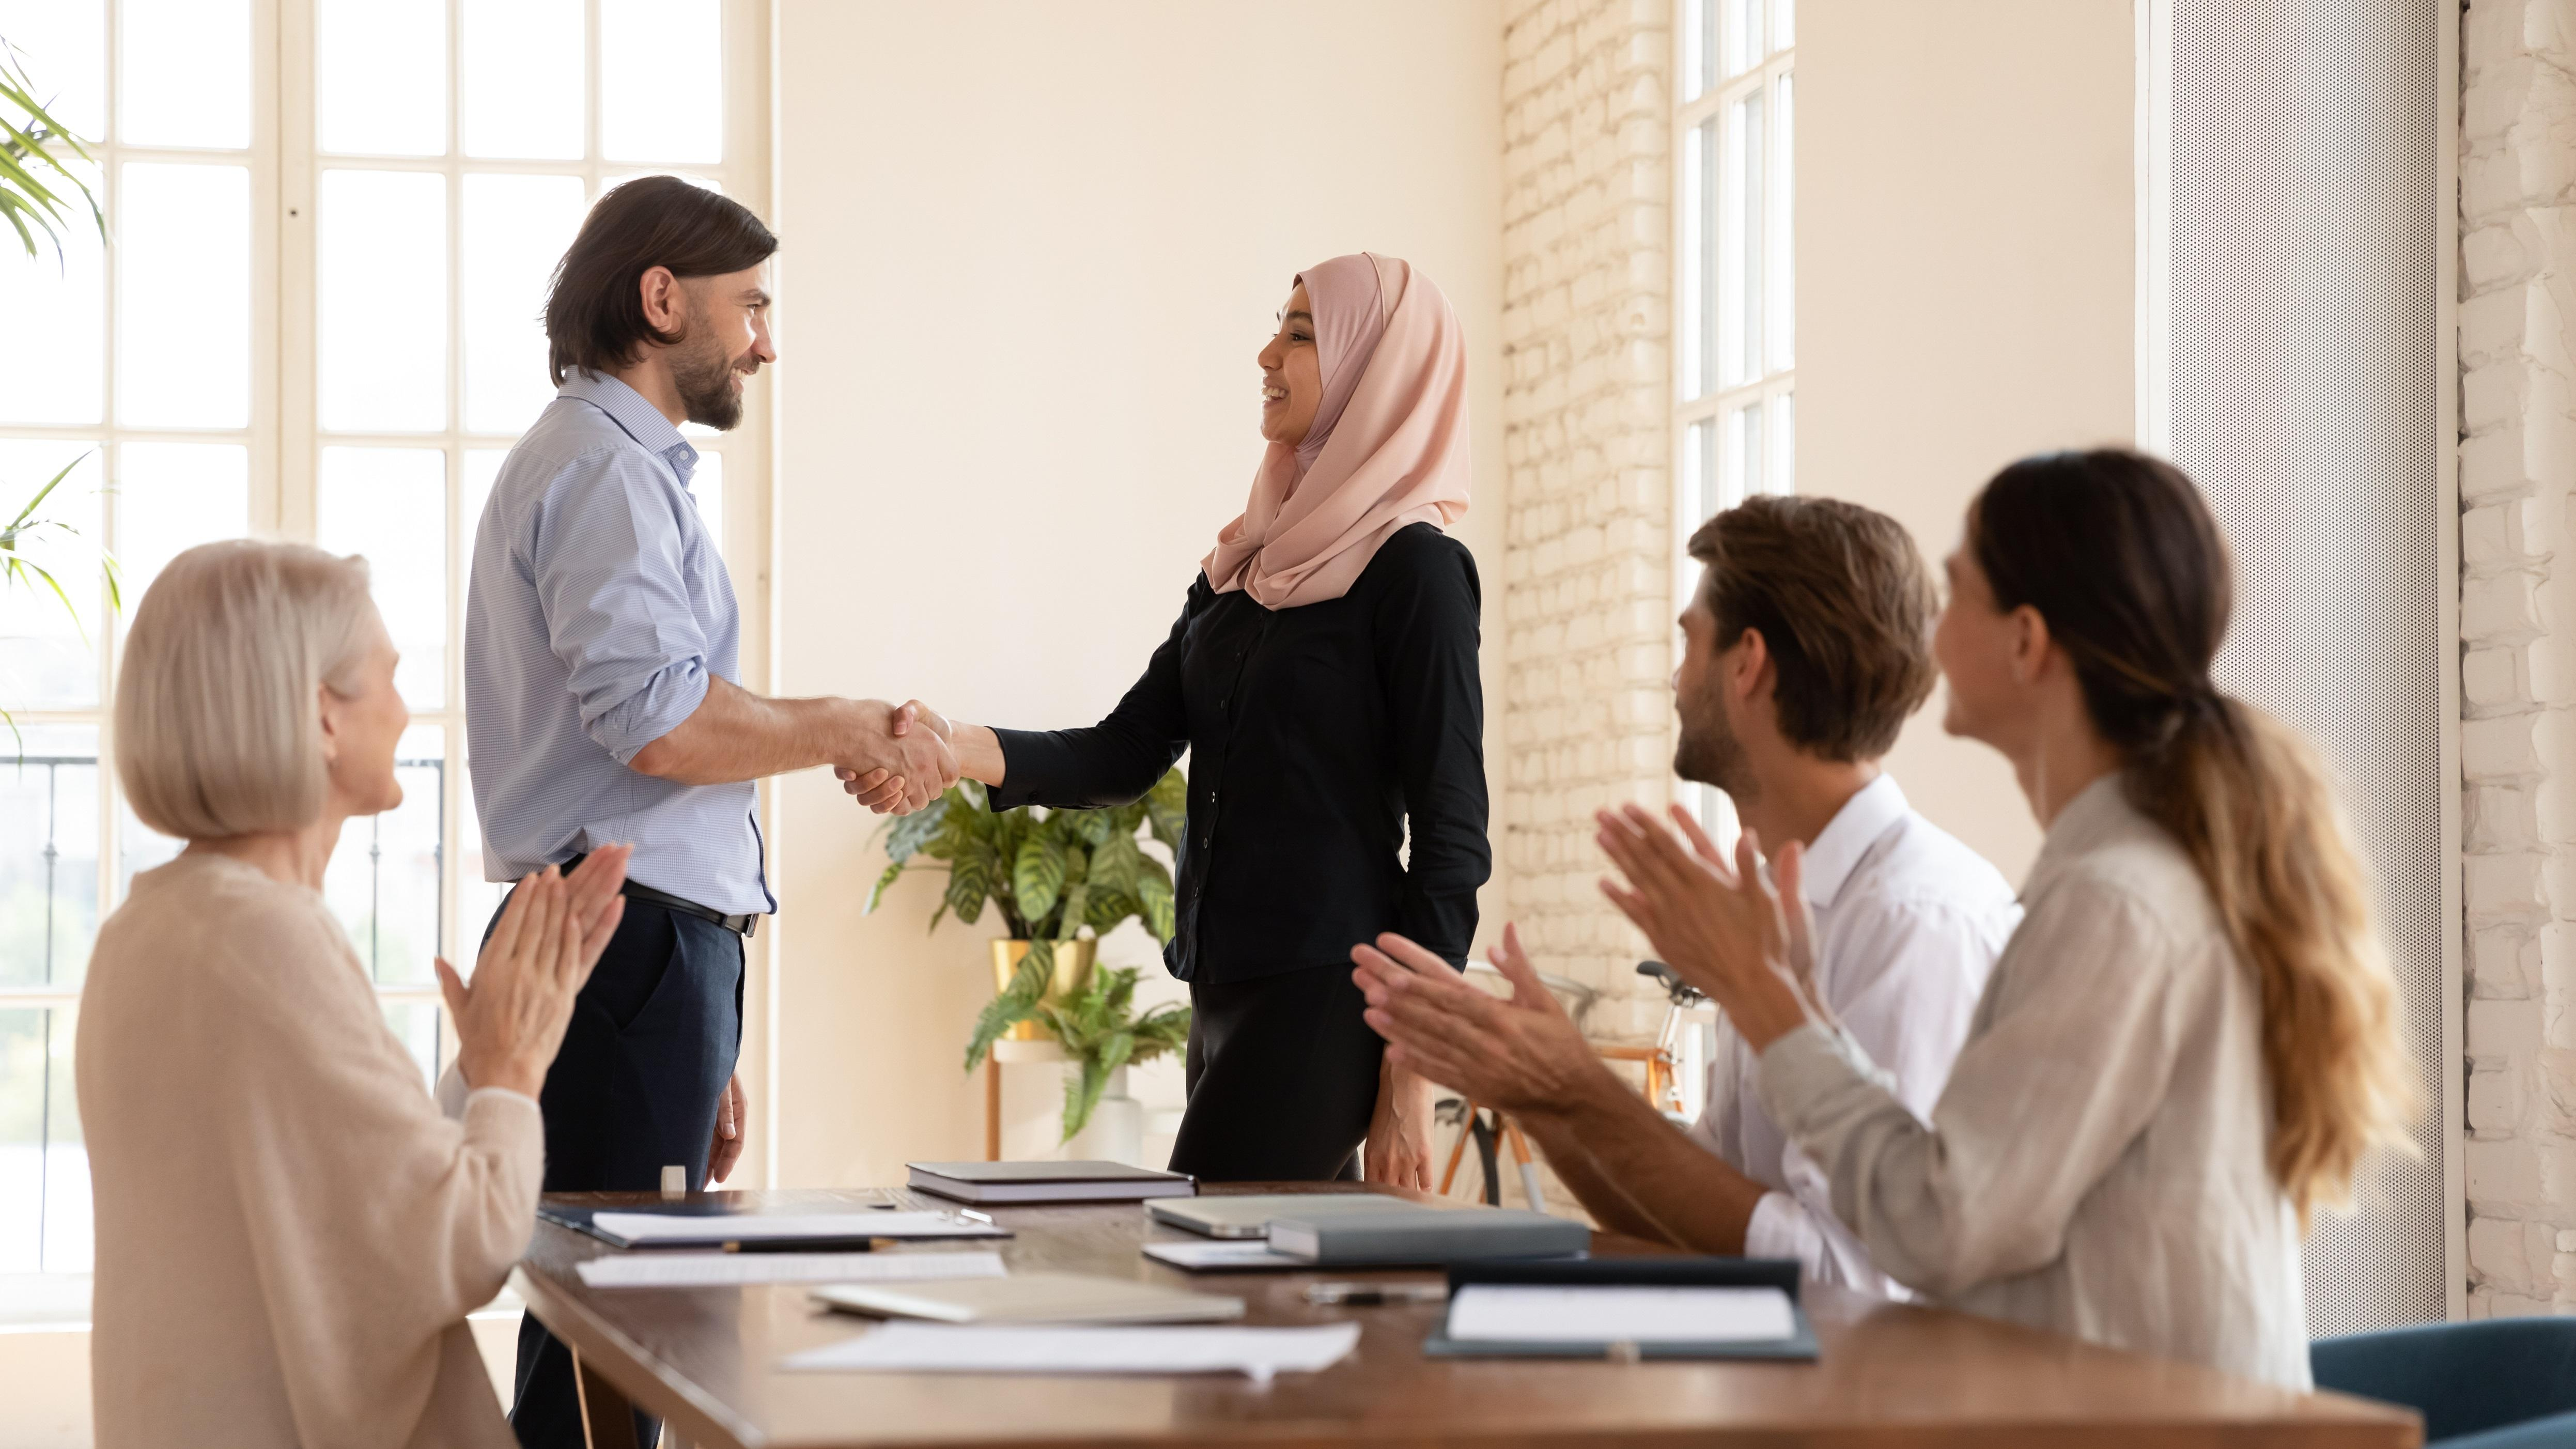 Whitepaper: Building A Winning Culture - Two Essential Leader Shifts